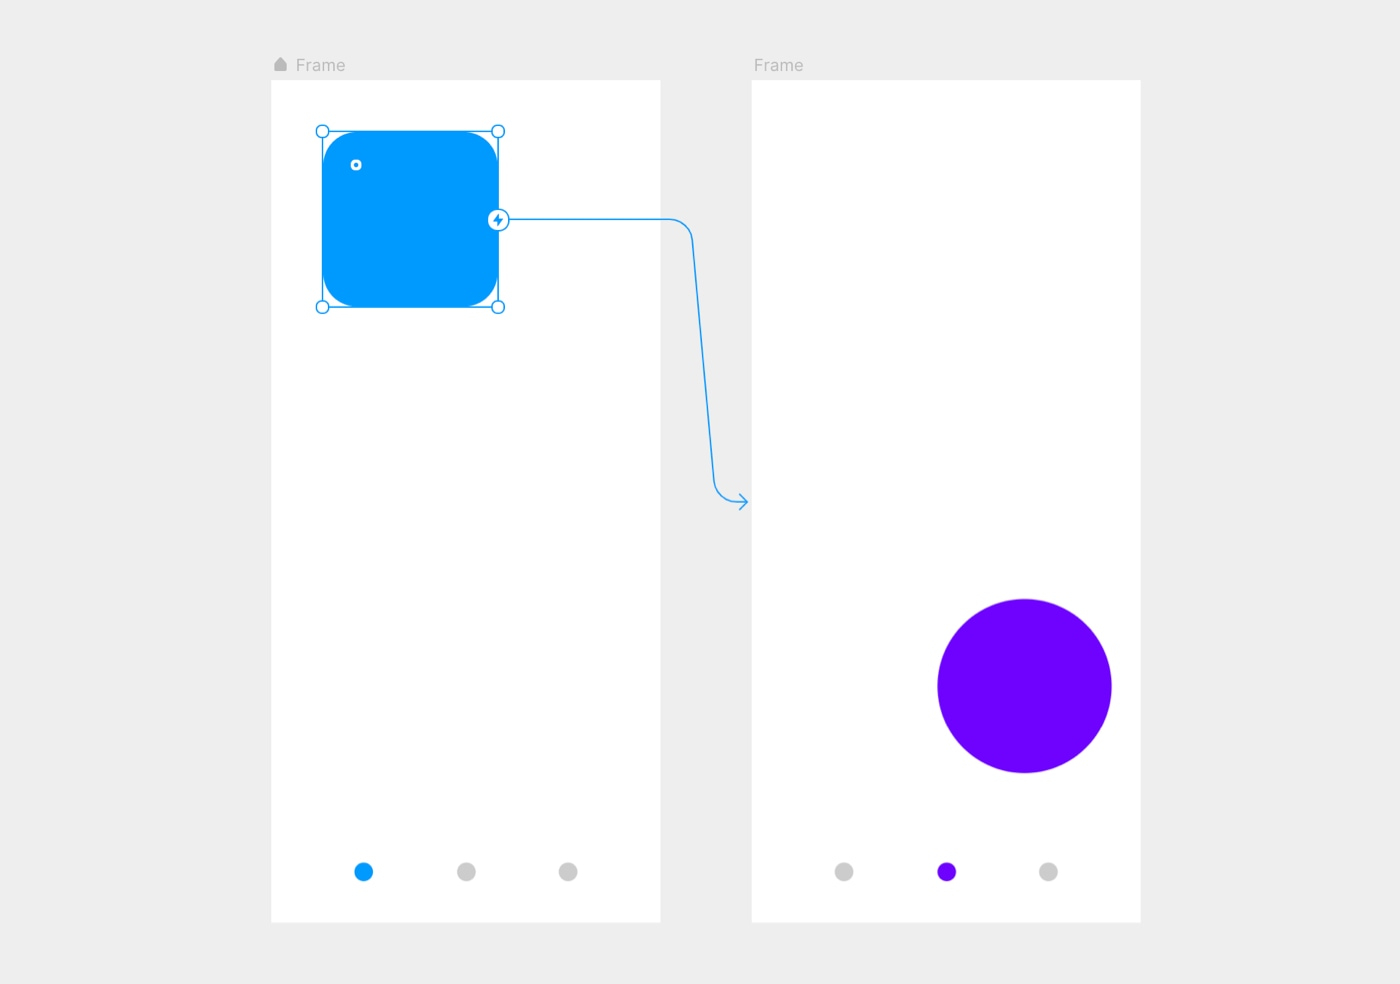 Linking a Frame to transition to the next screen